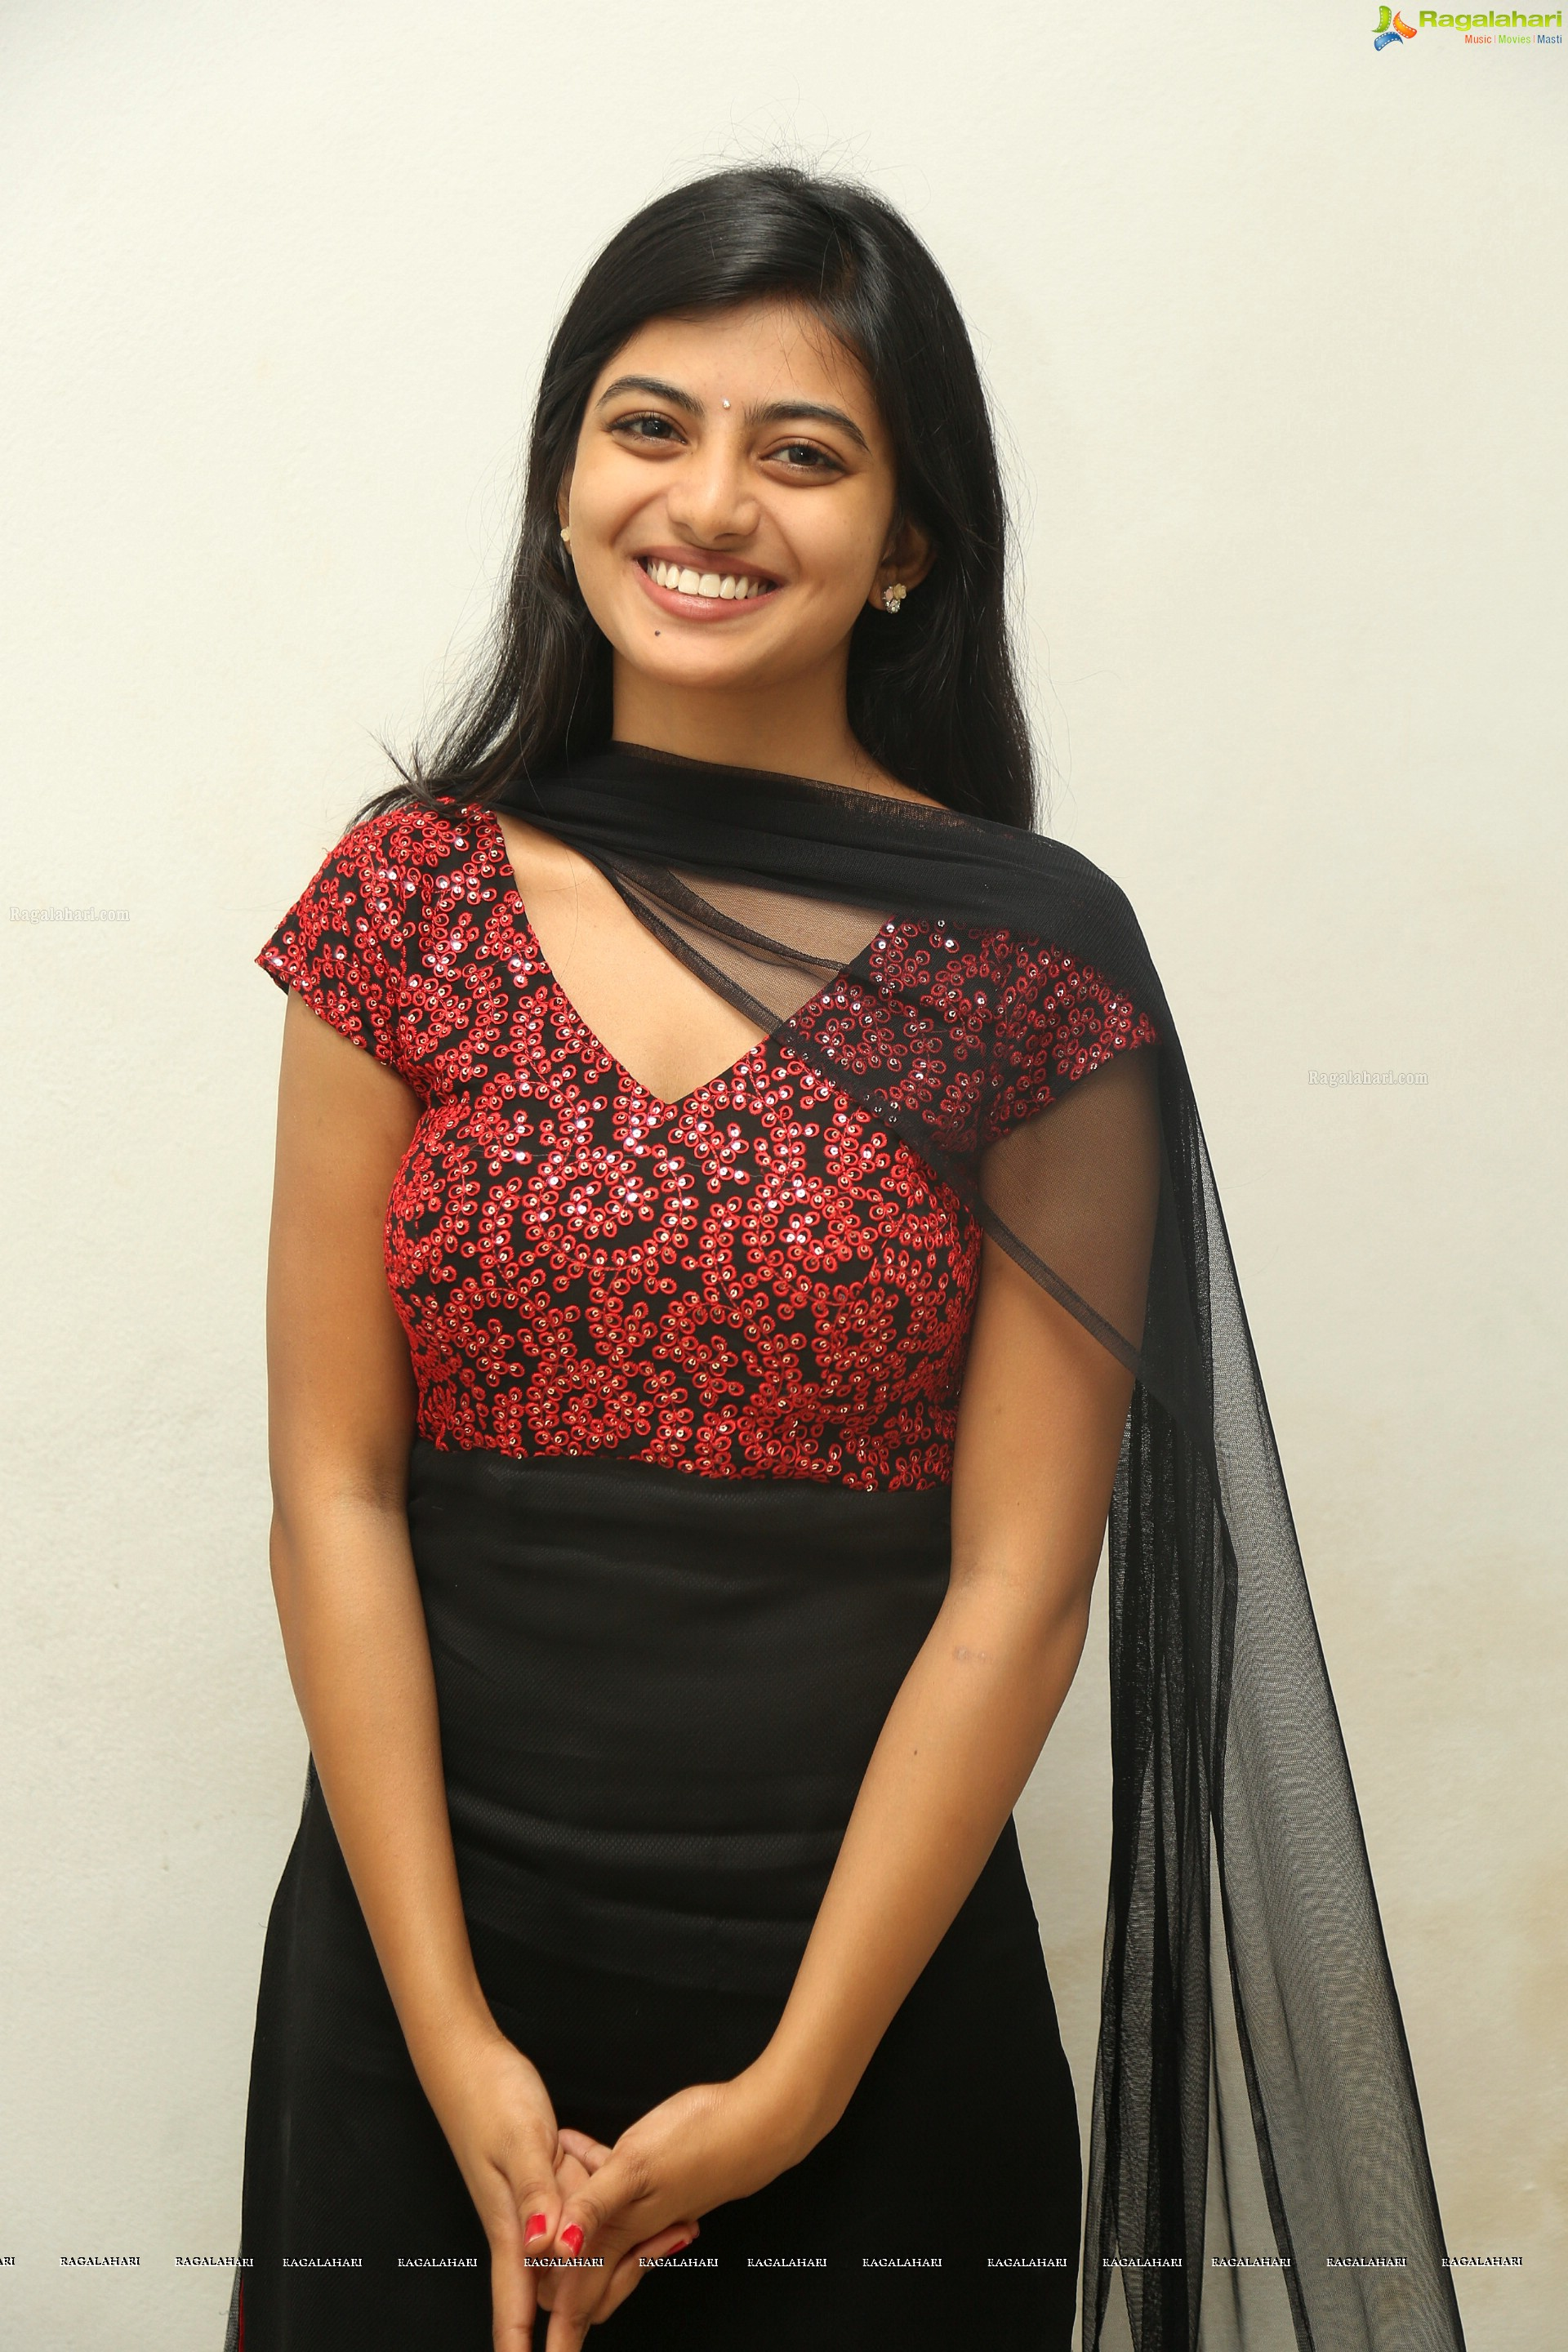 anandhi high definition image 21 tollywood heroines photos